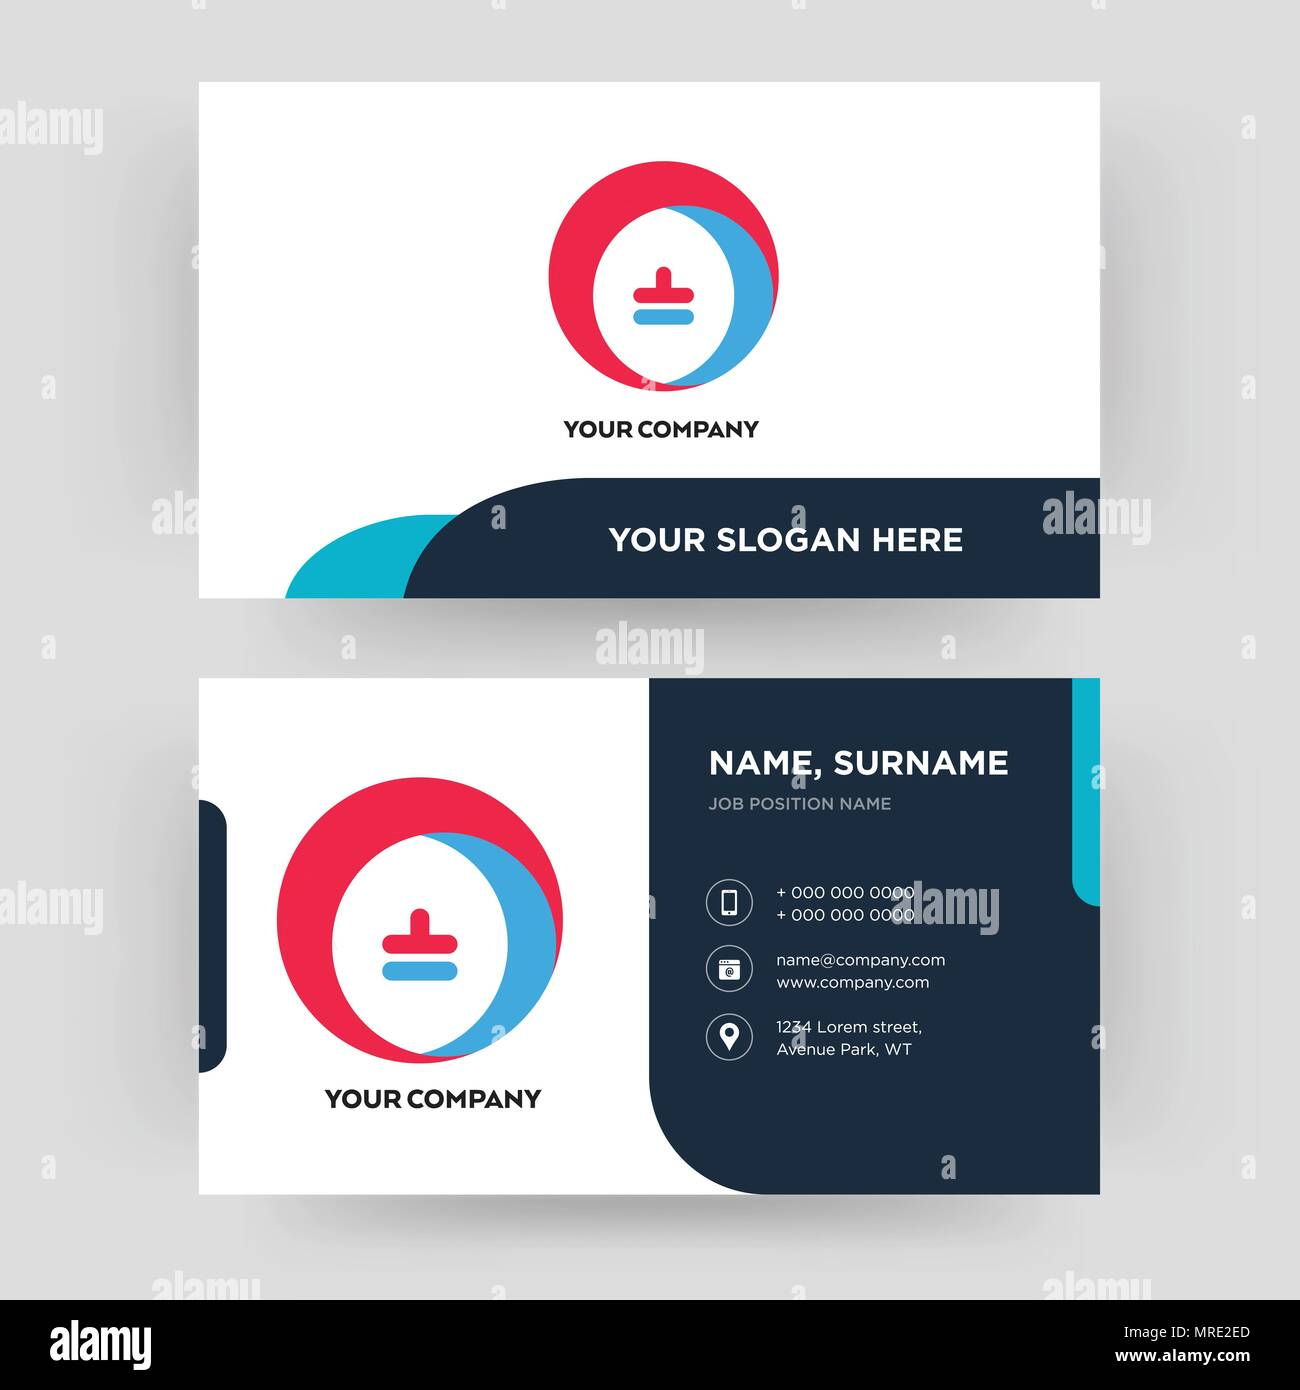 Heating cooling business card design template visiting for your heating cooling business card design template visiting for your company modern creative and clean identity card vector reheart